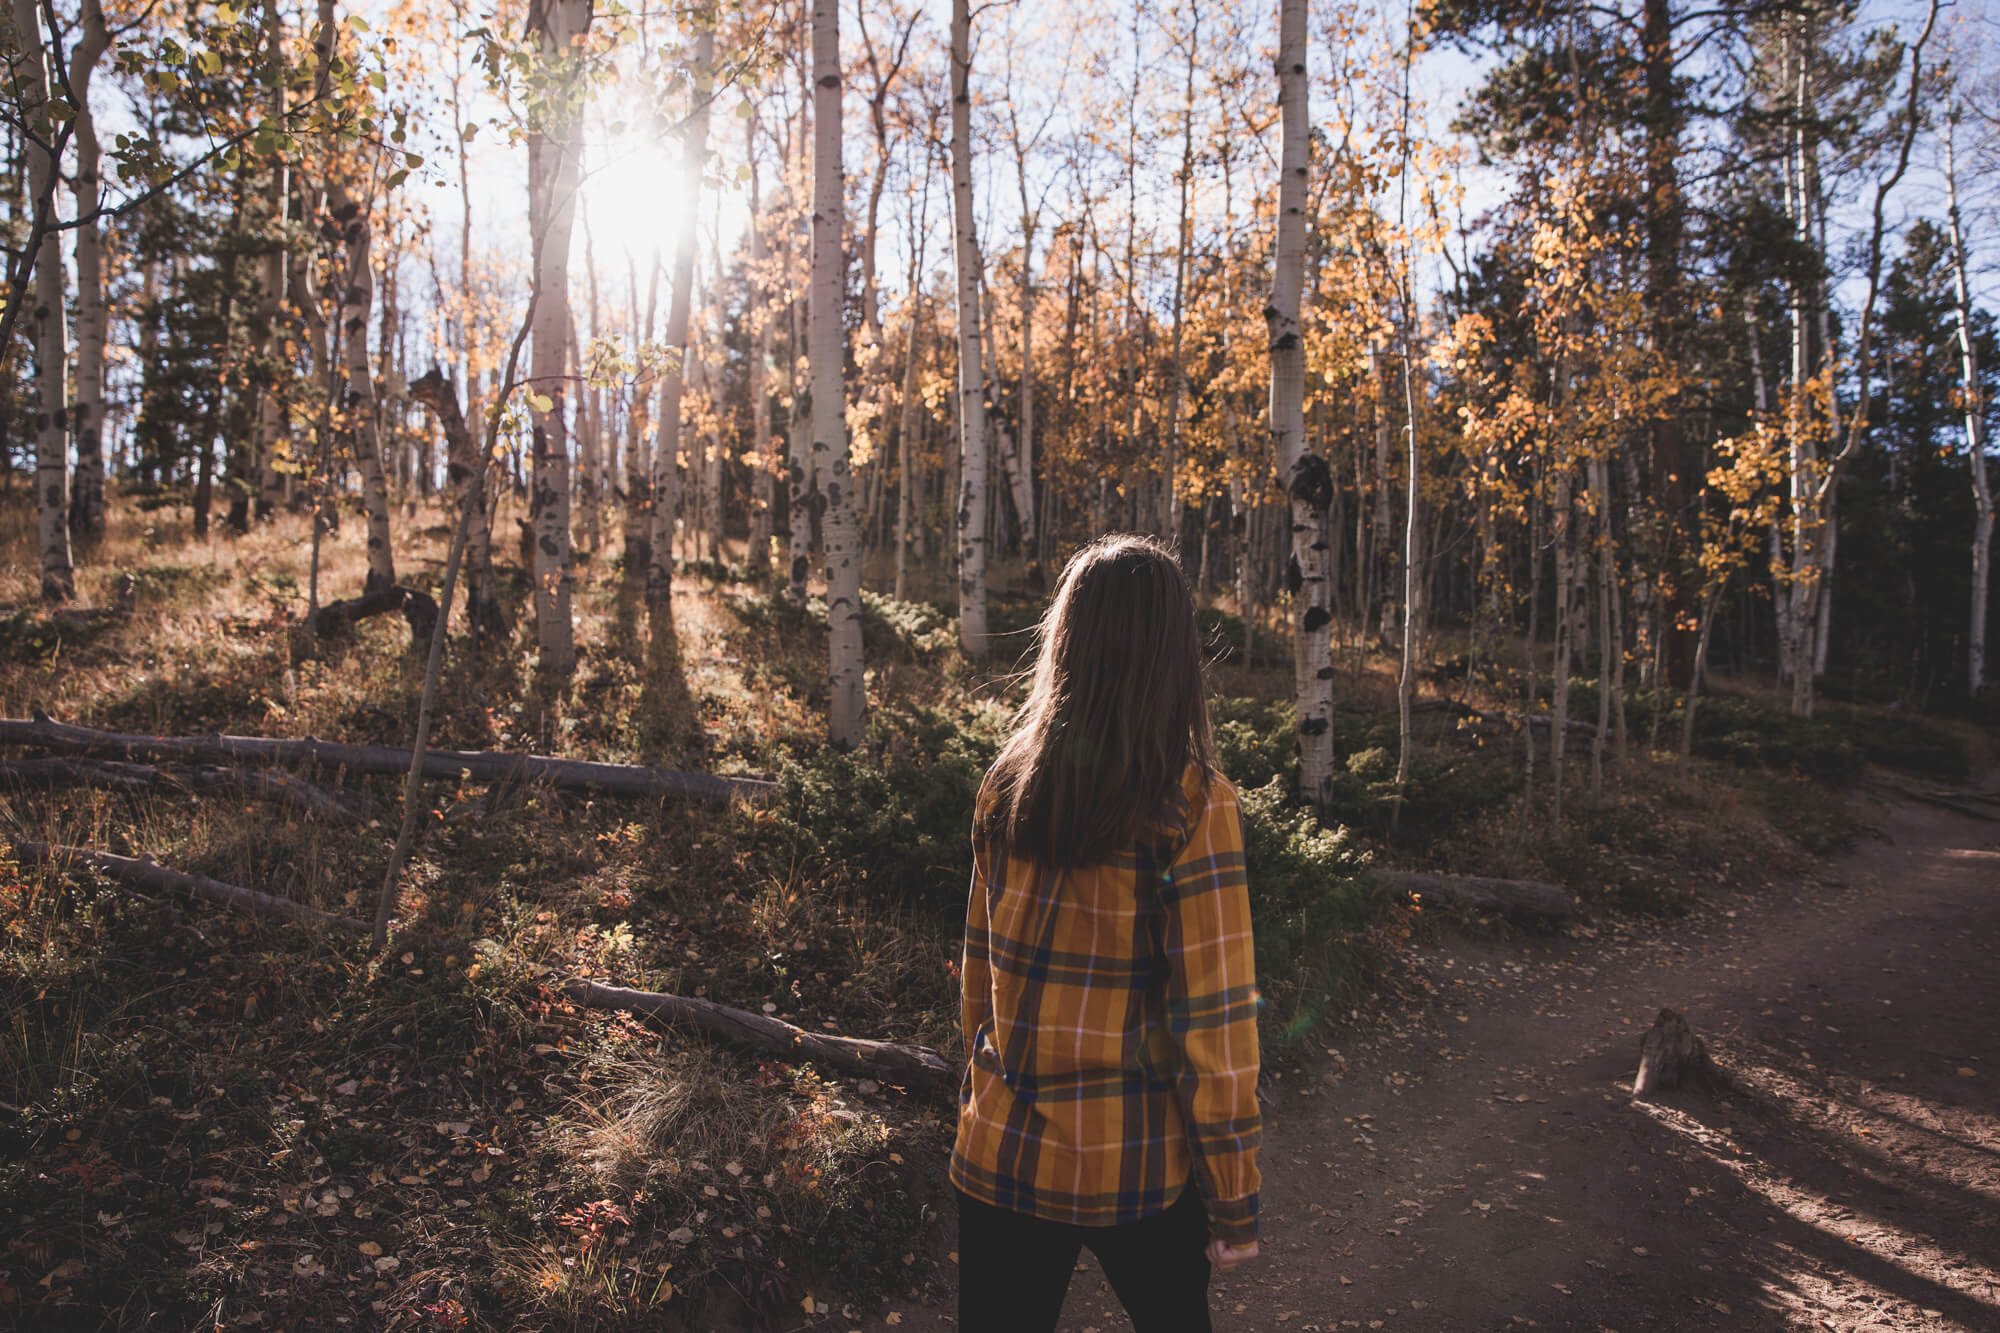 A woman with brown hair and a yellow plaid shirt walking on a trail surrounded by aspen trees with yellow leaves